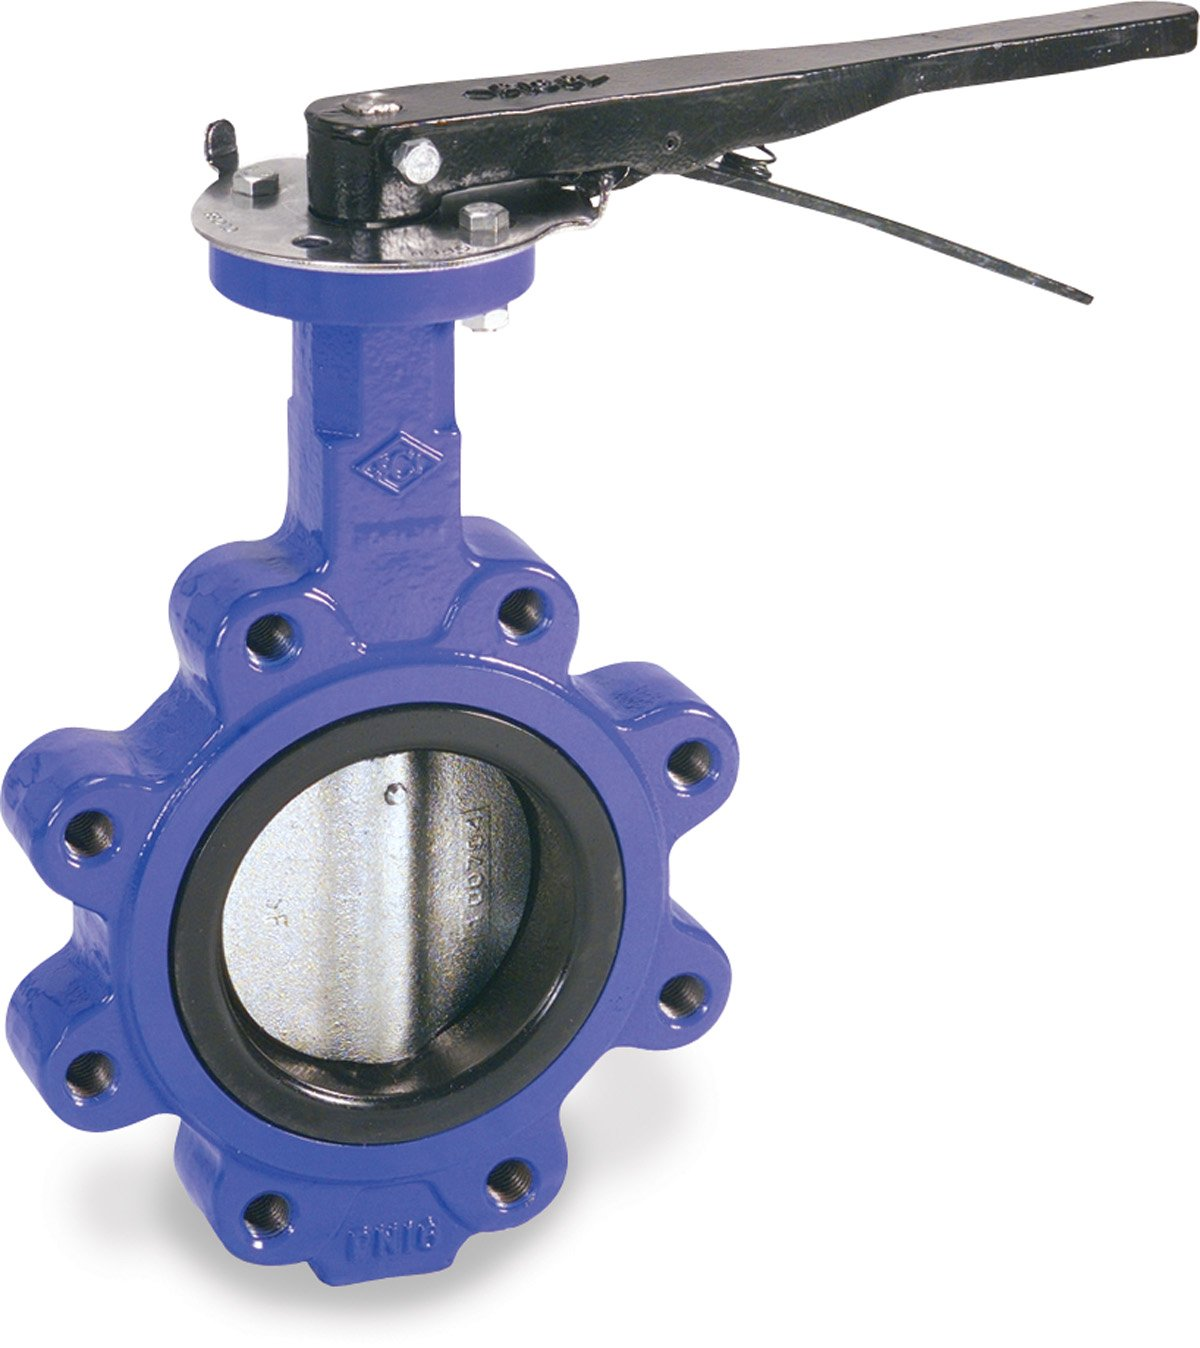 Smith-Cooper International 160 Series Iron Butterfly Valve, Lug Style, Nickel Plated Ductile Iron Disc, Buna-N Seat, Lever Handle, 6''